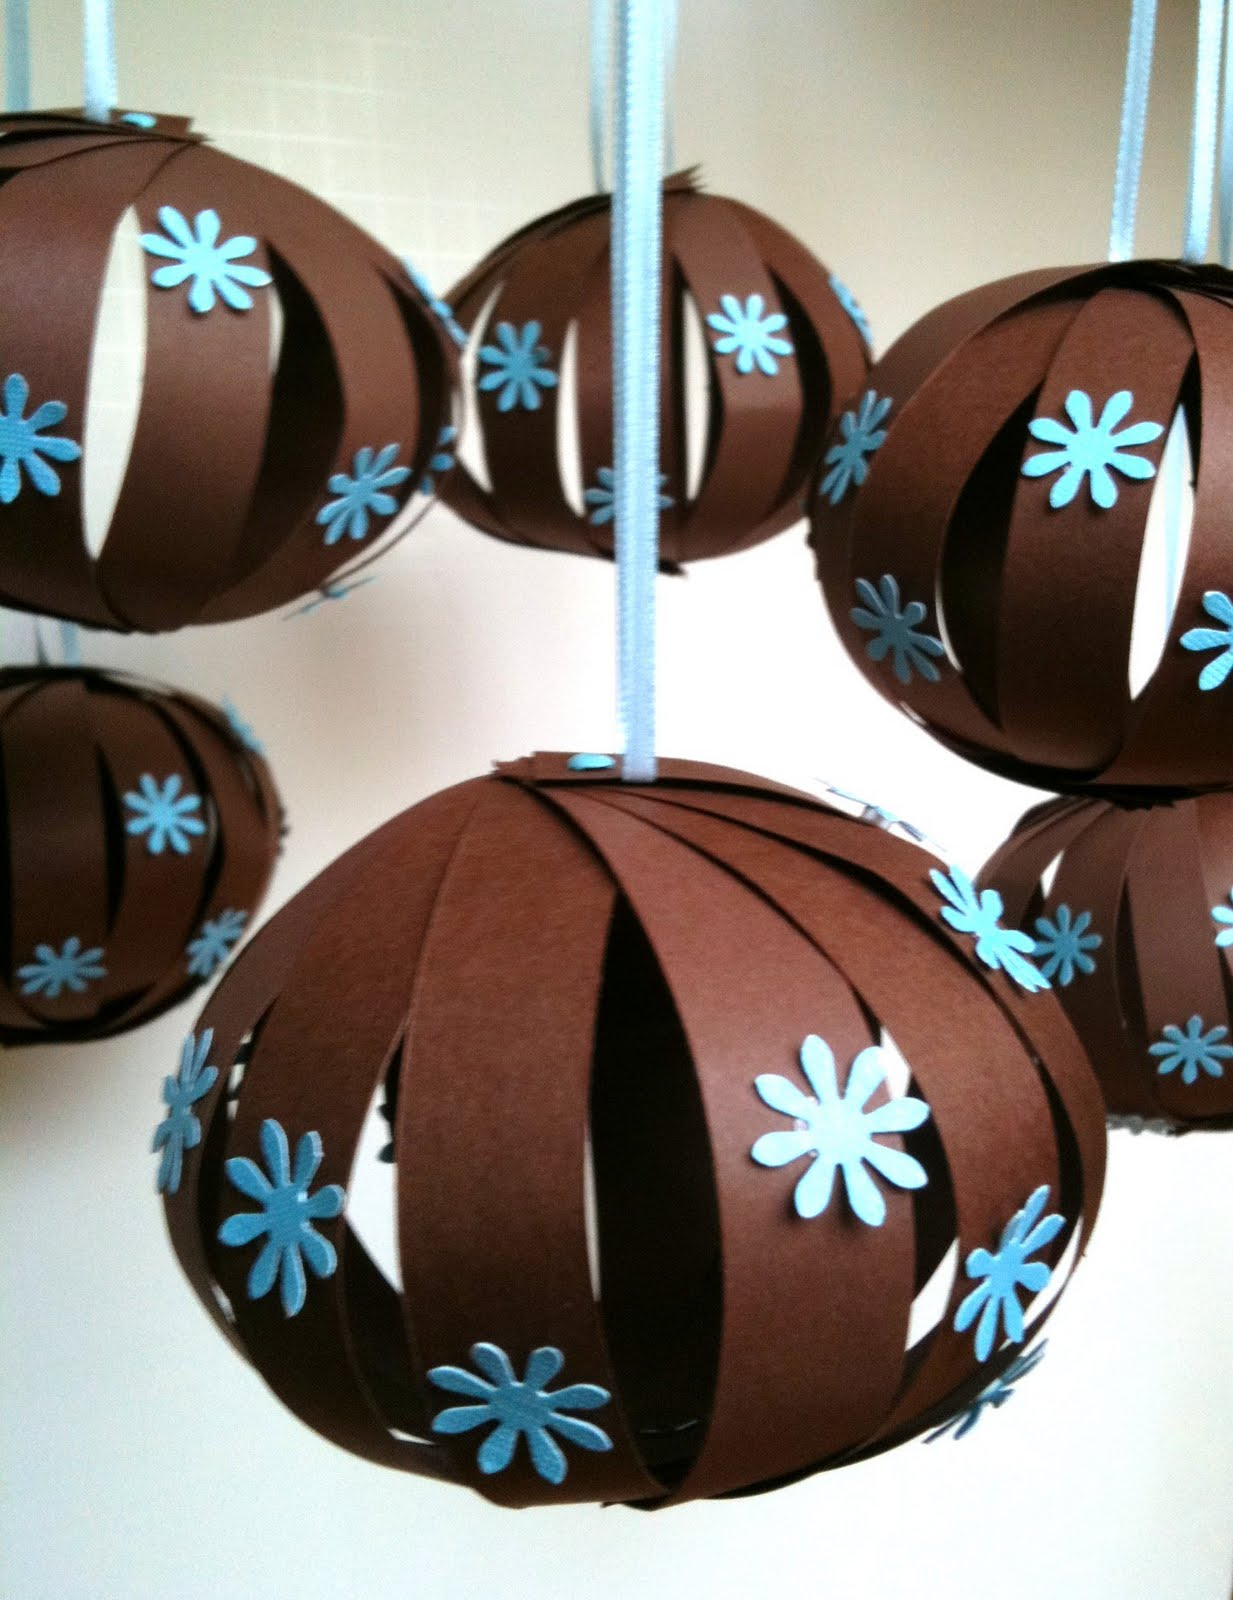 Barefoot sewing crafting baby shower hanging balls for Baby boy baby shower decoration ideas